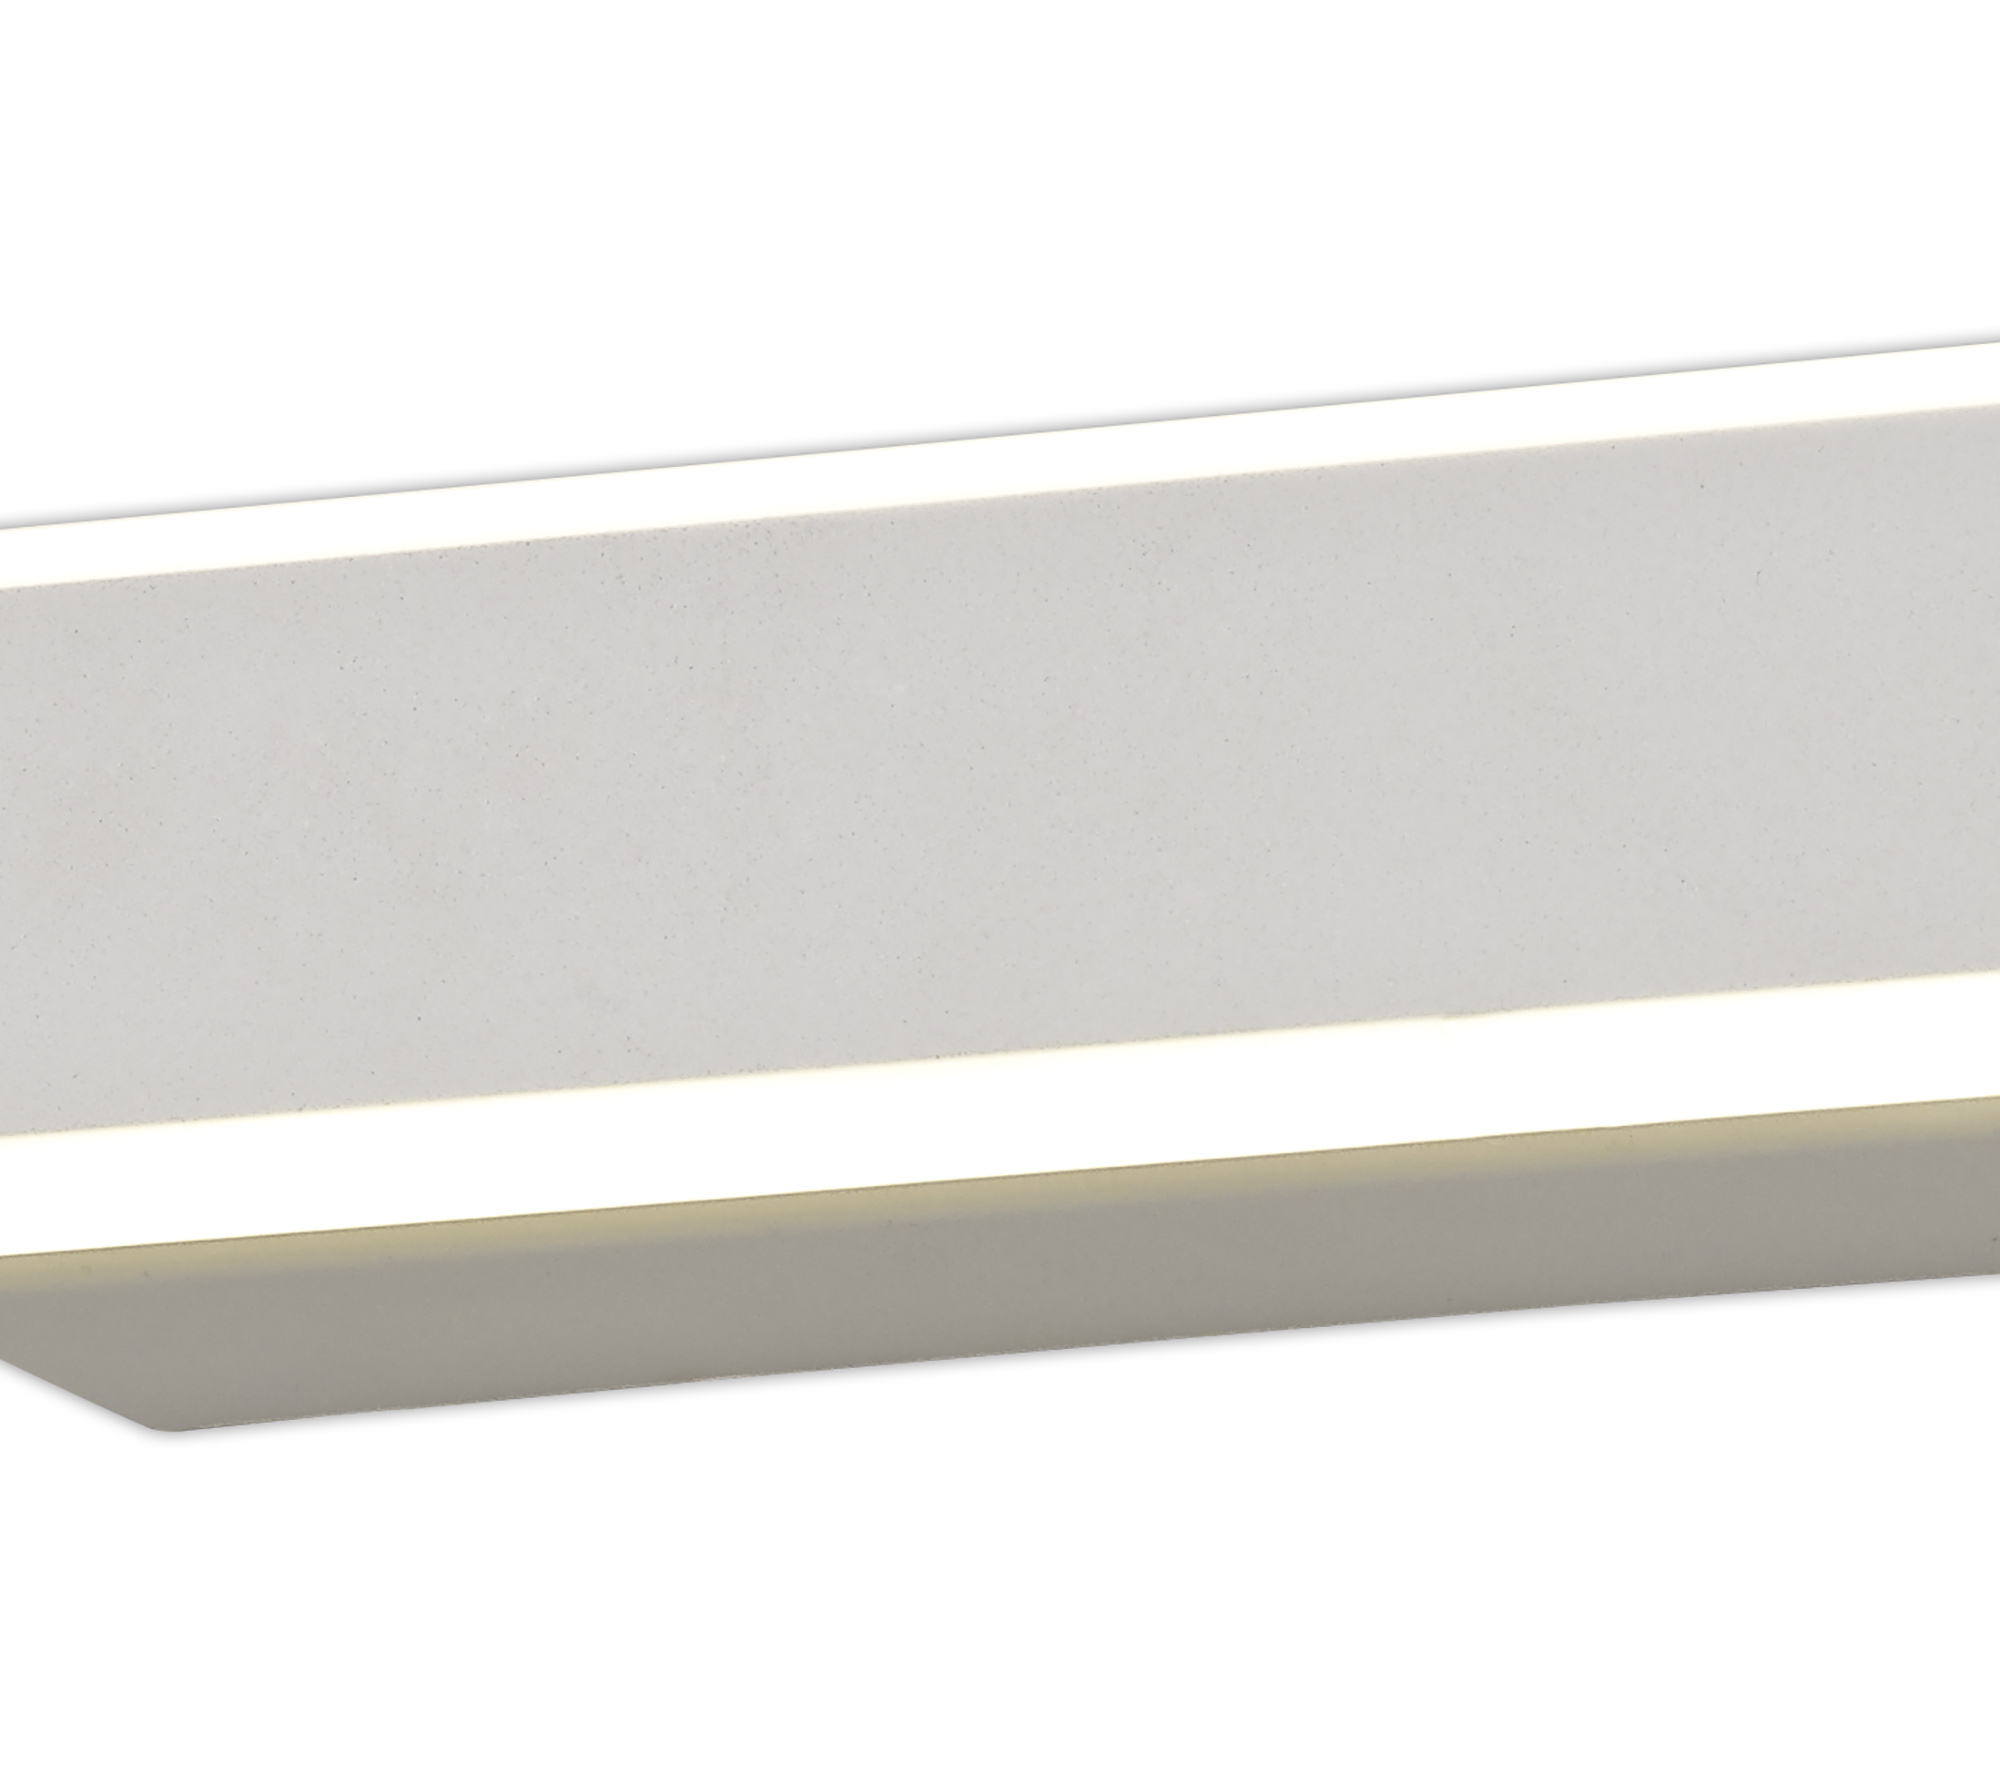 Wall Lamp, 1 x 12W LED, 4000K, 568lm, Sand White, 3yrs Warranty